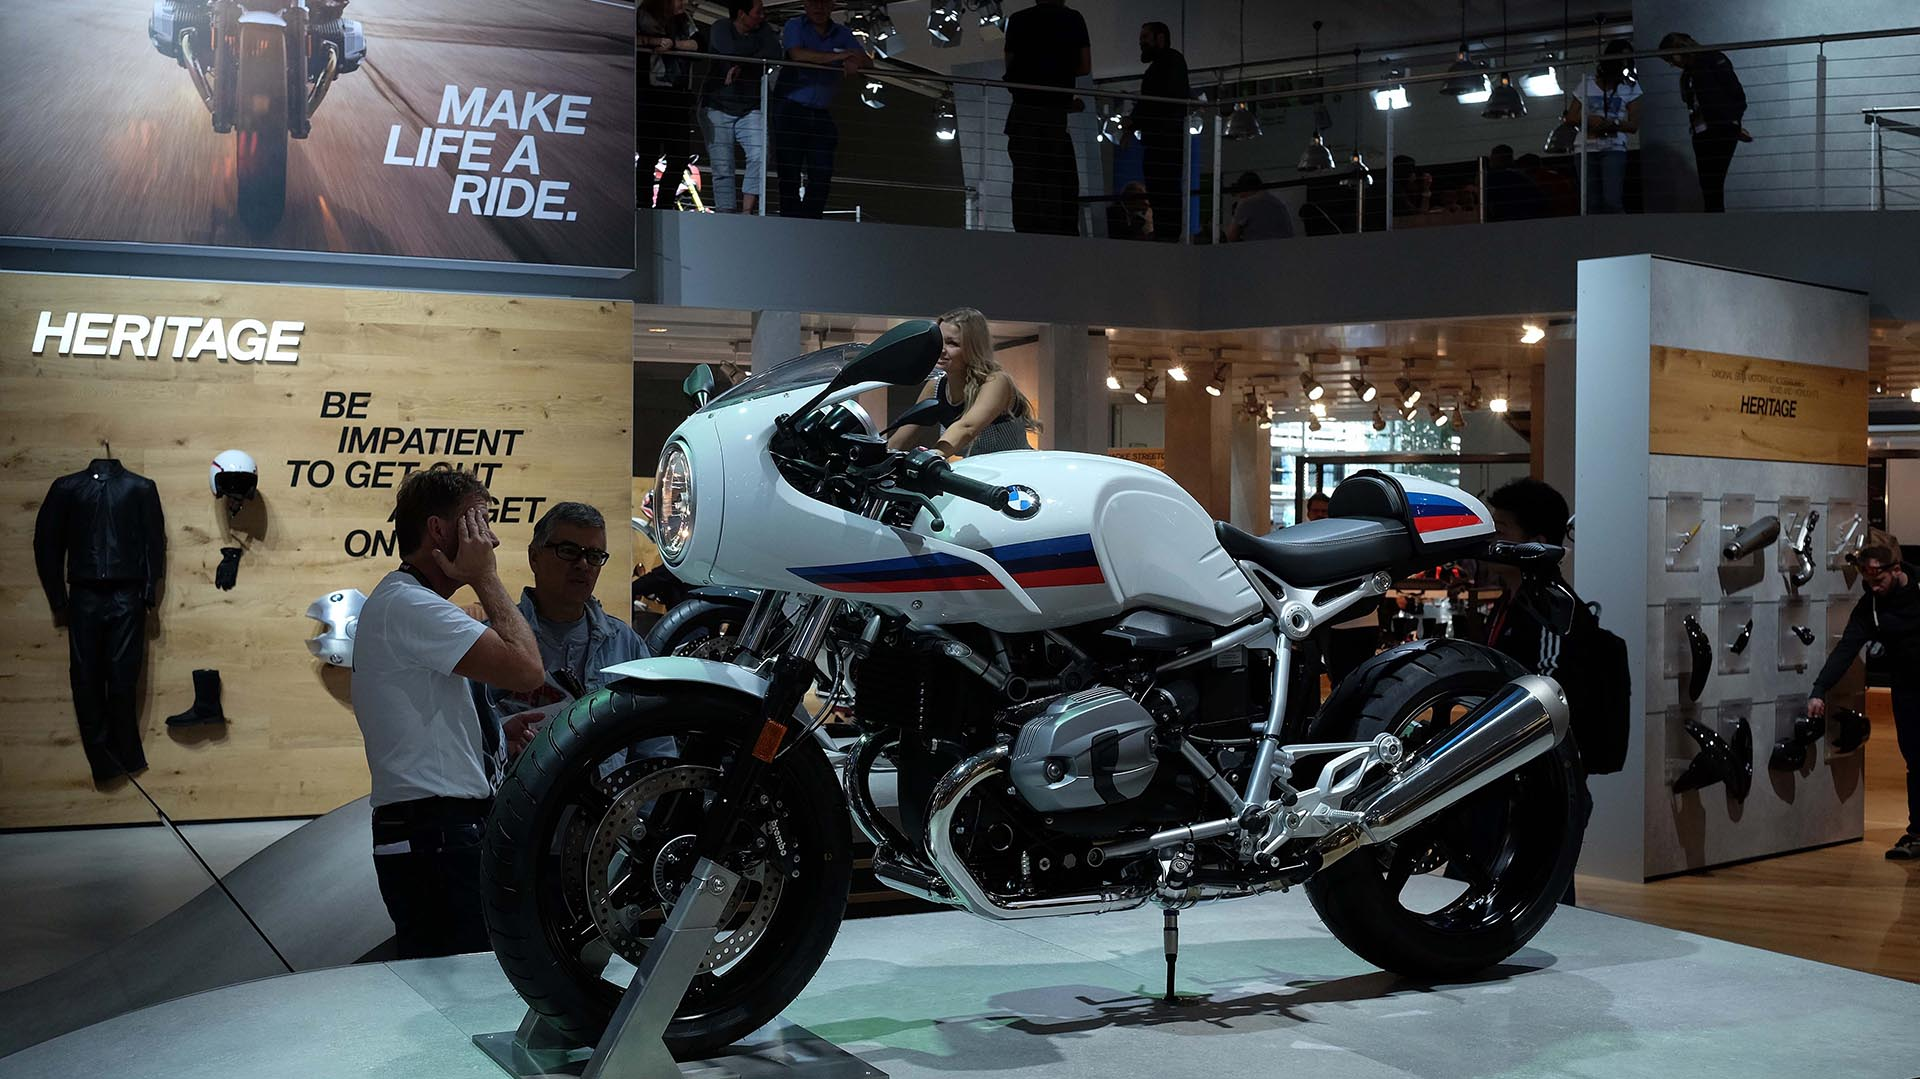 Visitors look at details of German BMW motorcycles at the Intermot motorcycle trade fair in Cologne, western Germany on October 5, 2016.  Europe's biggest motorcycle trade fair runs until 09 October 2016. / AFP PHOTO / PATRIK STOLLARZ